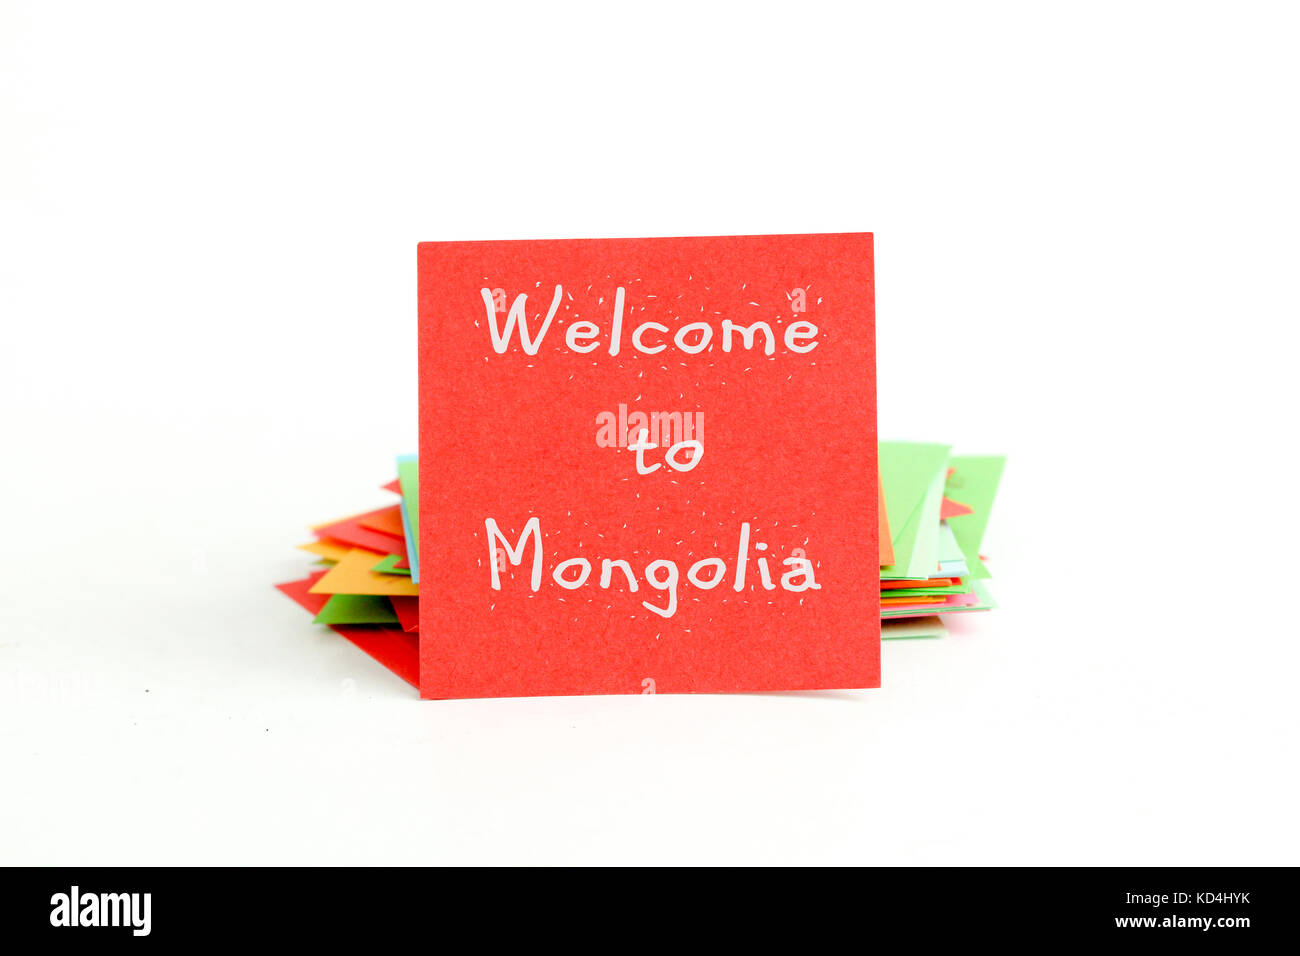 picture of a red note paper with text welcome to mongolia - Stock Image